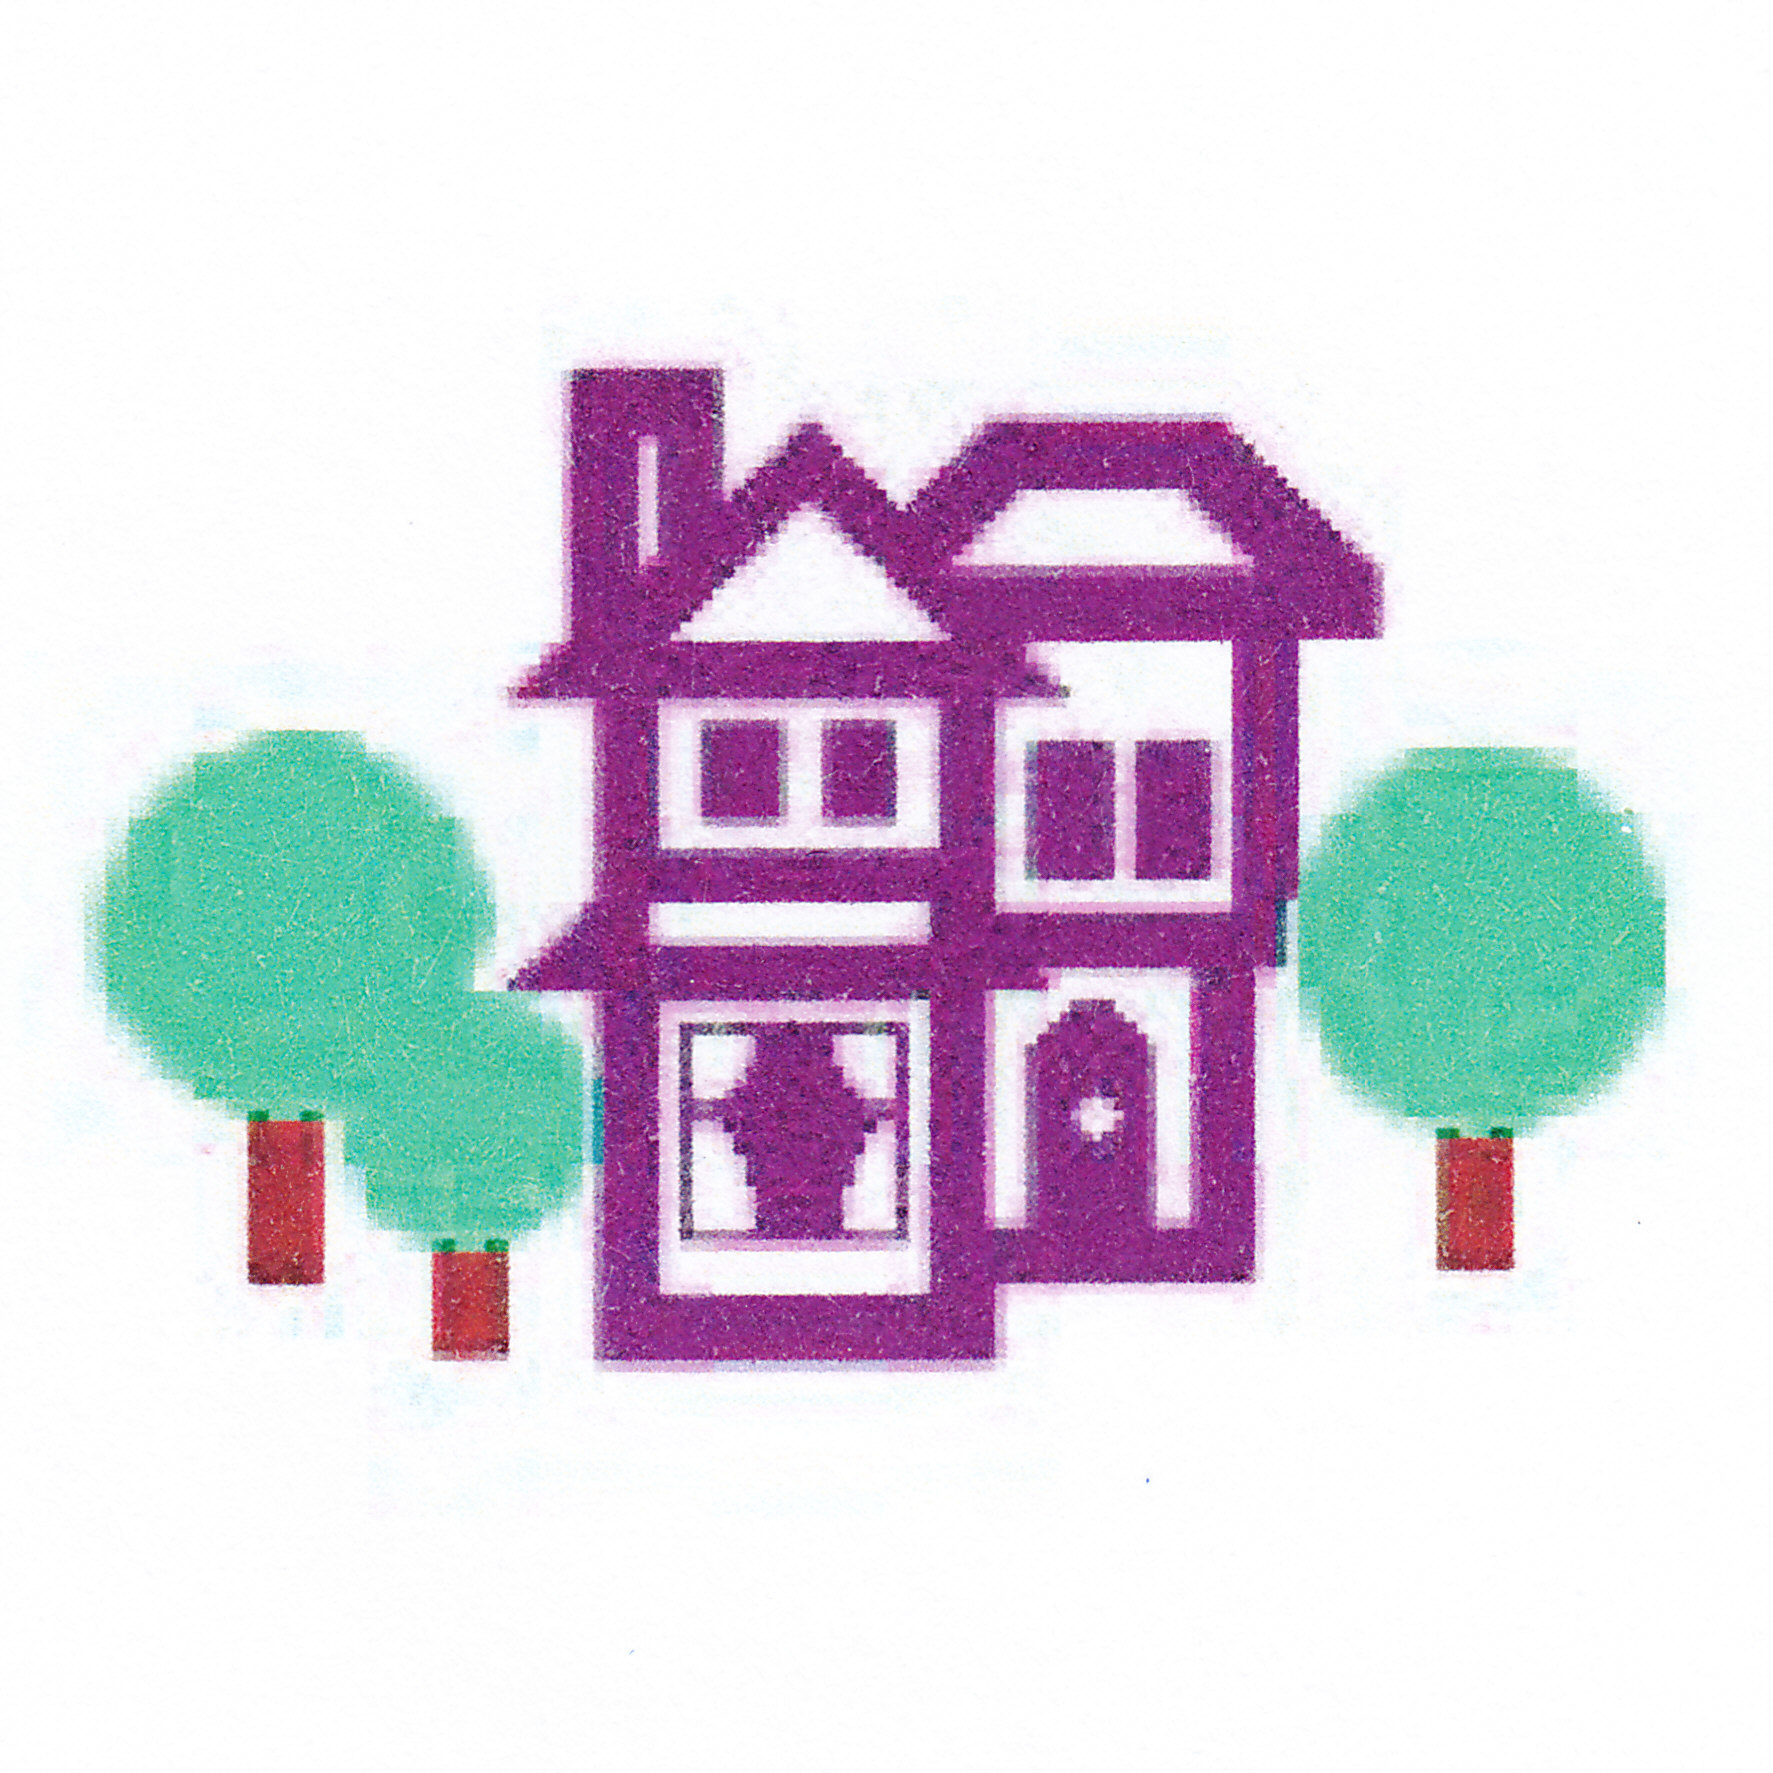 Ryandale Transitional Housing